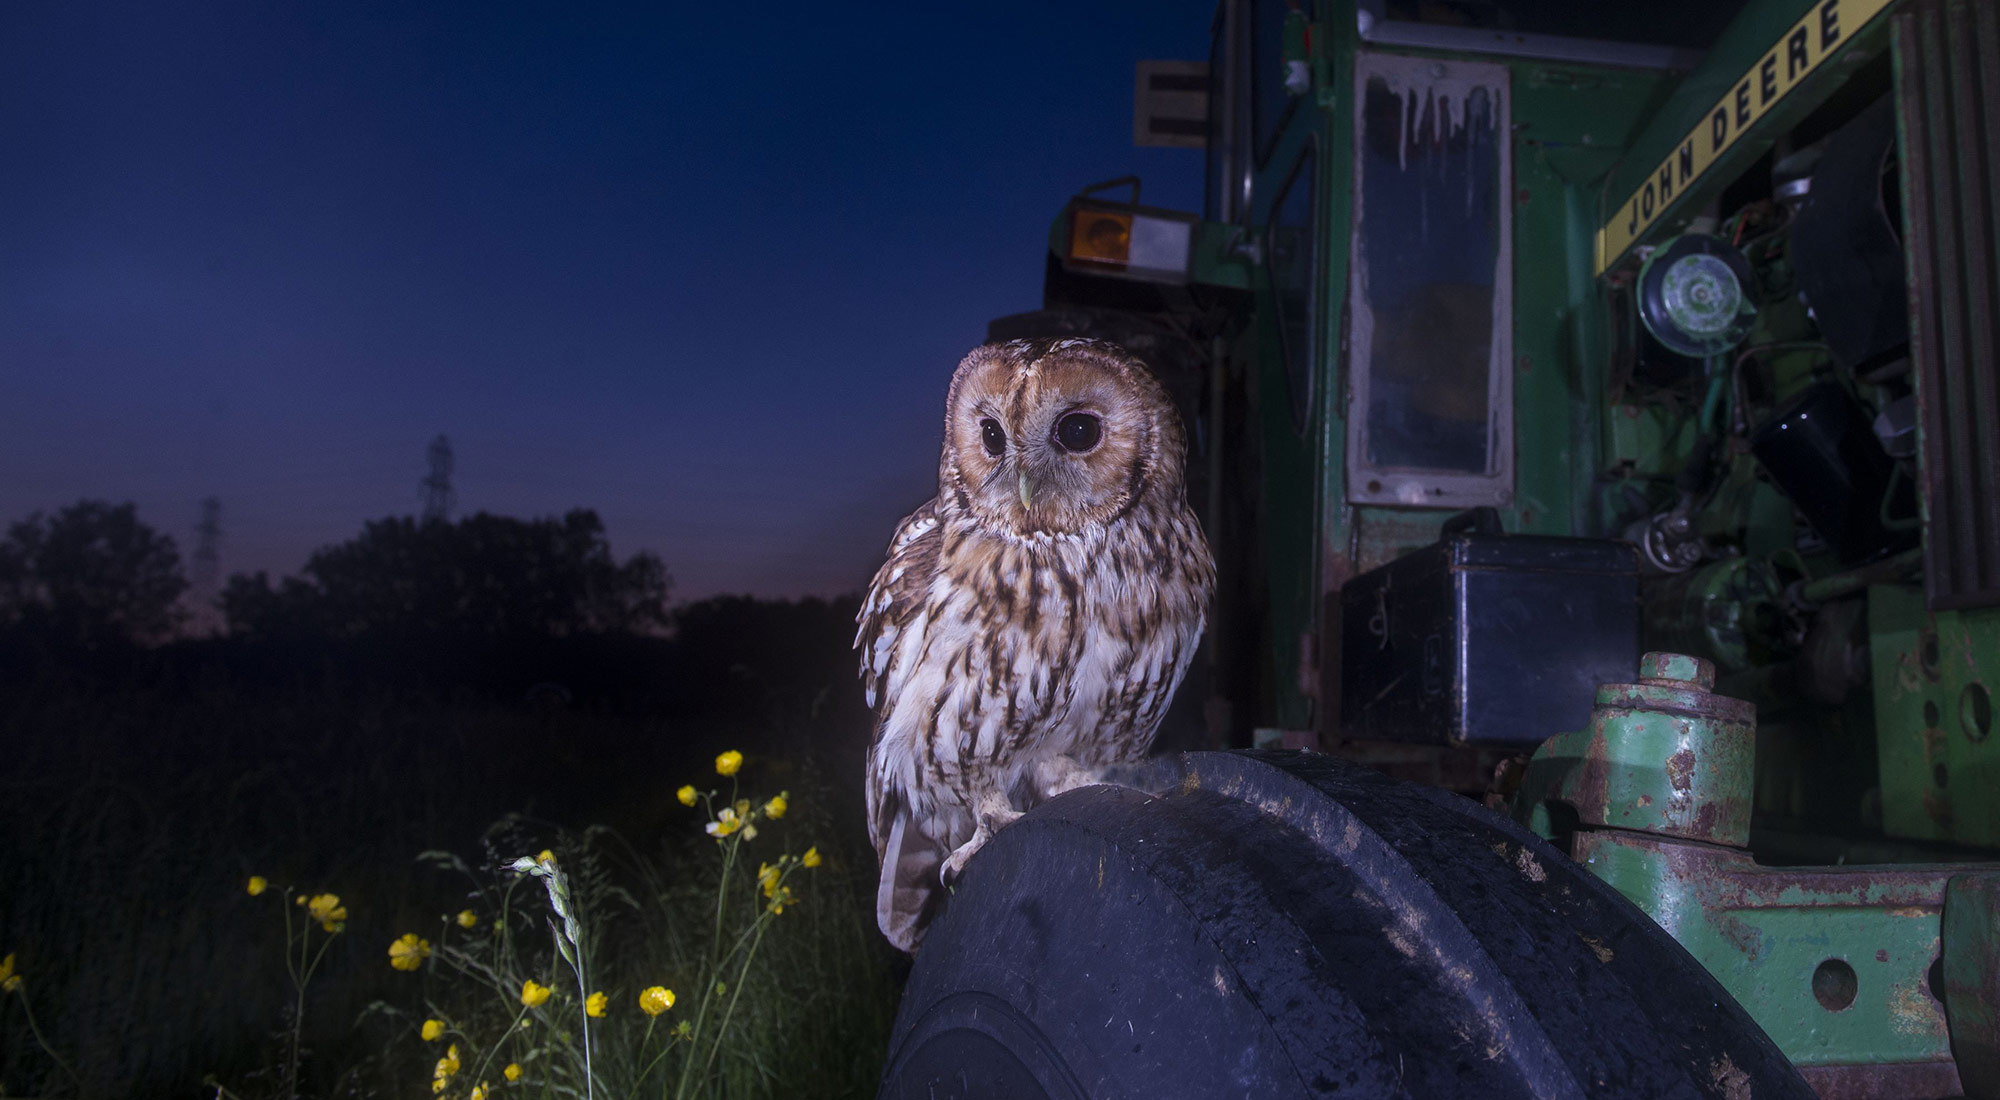 Wildlife Photography Hides Hide photography Bourne Lincolnshire tractor john deere bourne tractors perched baited tailor made photography wildflowers buttercups wild flowers tom robinson nikon wide angle remote release flash tawny owl